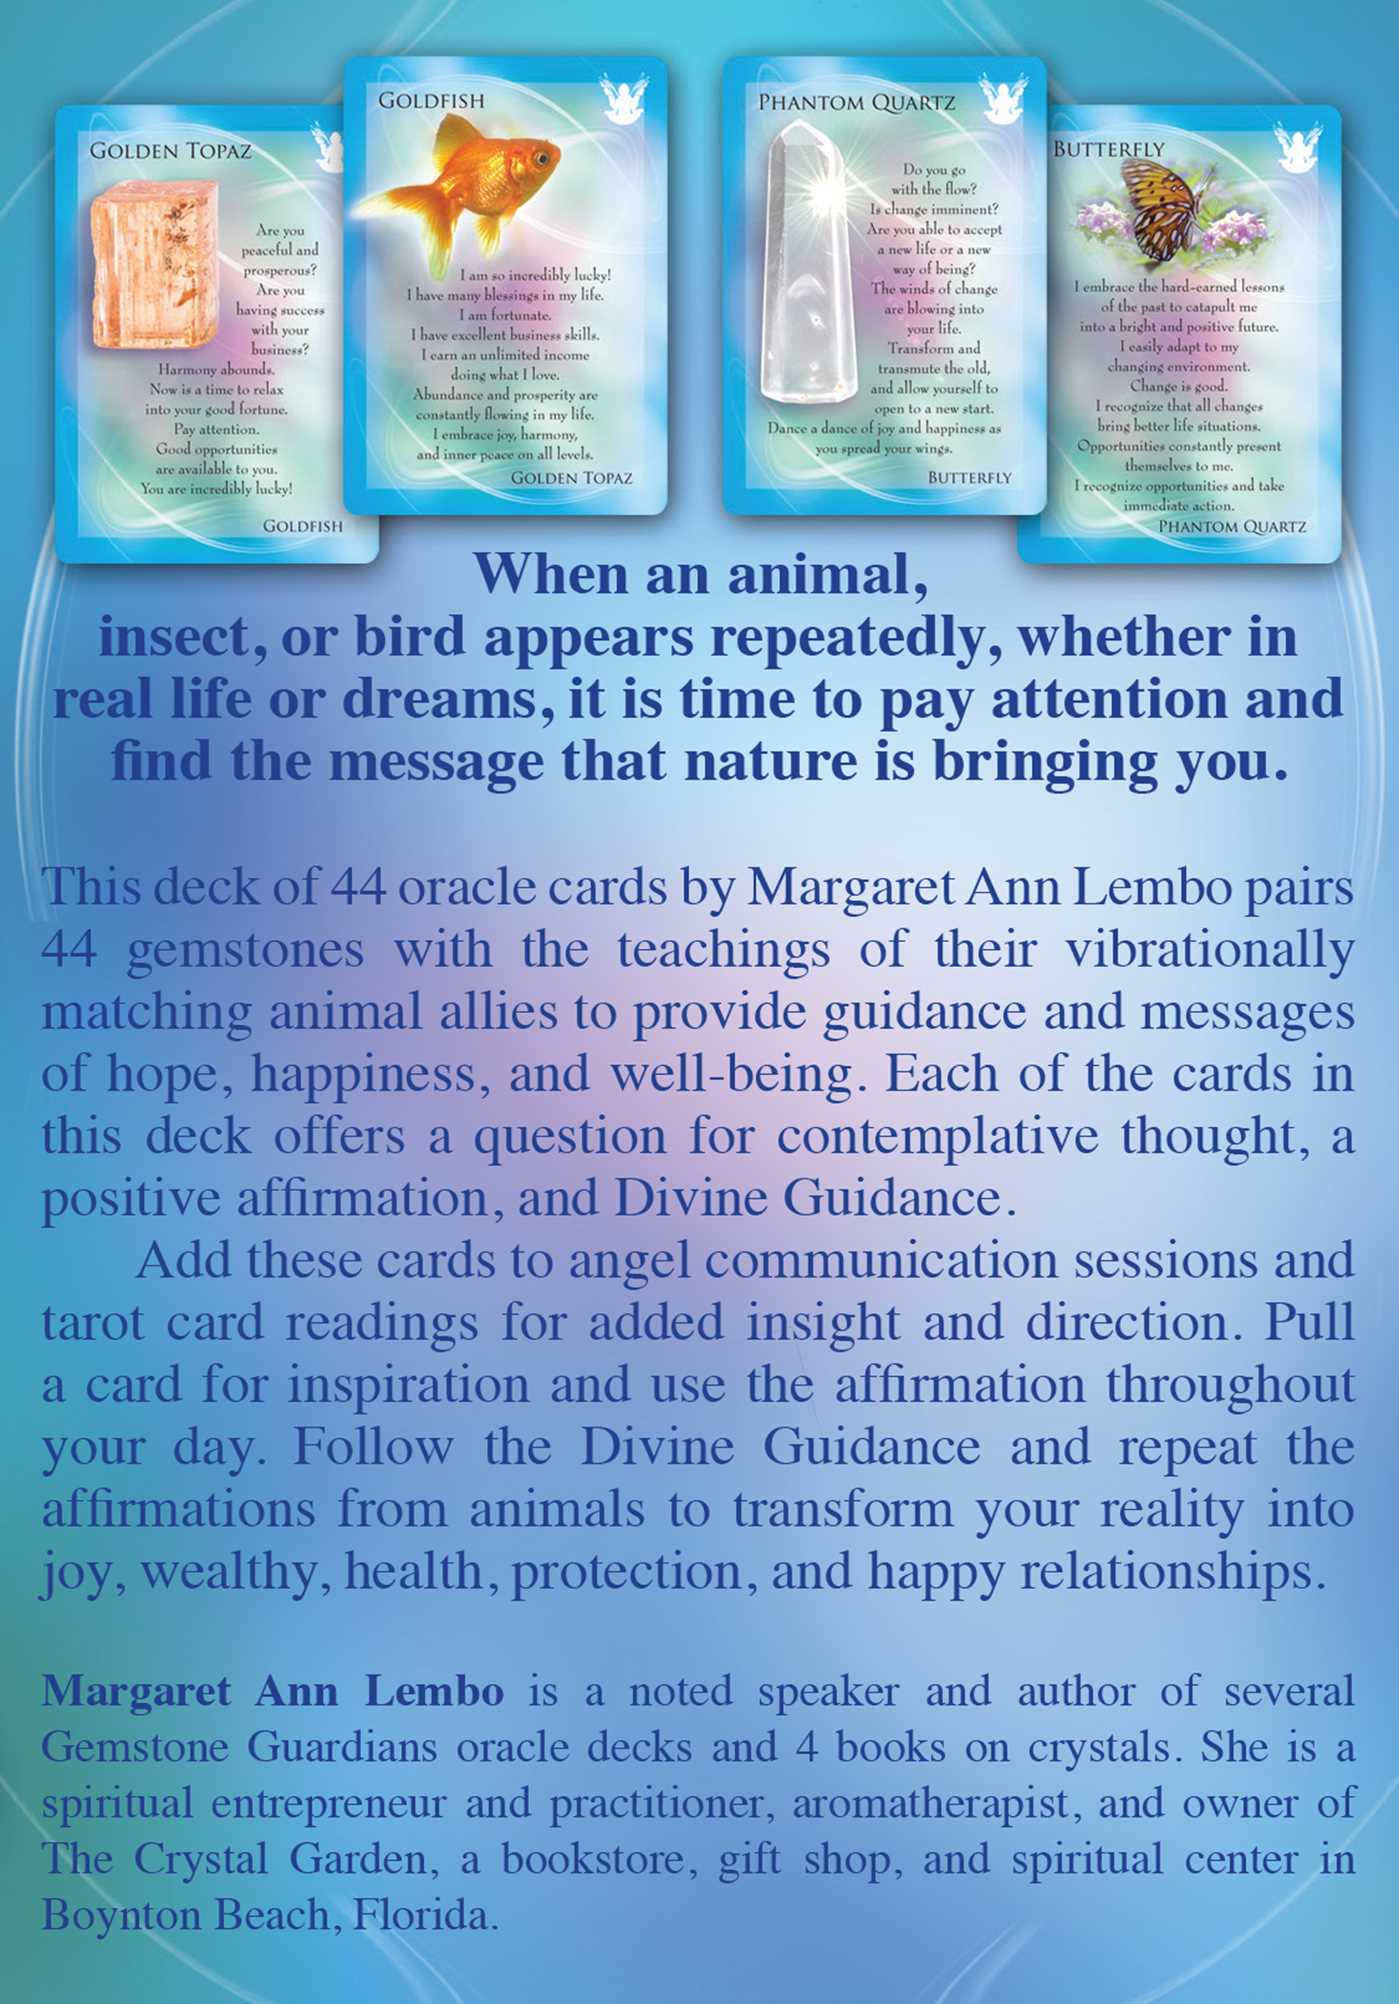 The animal allies and gemstone guardians cards 9781844097418 hr back